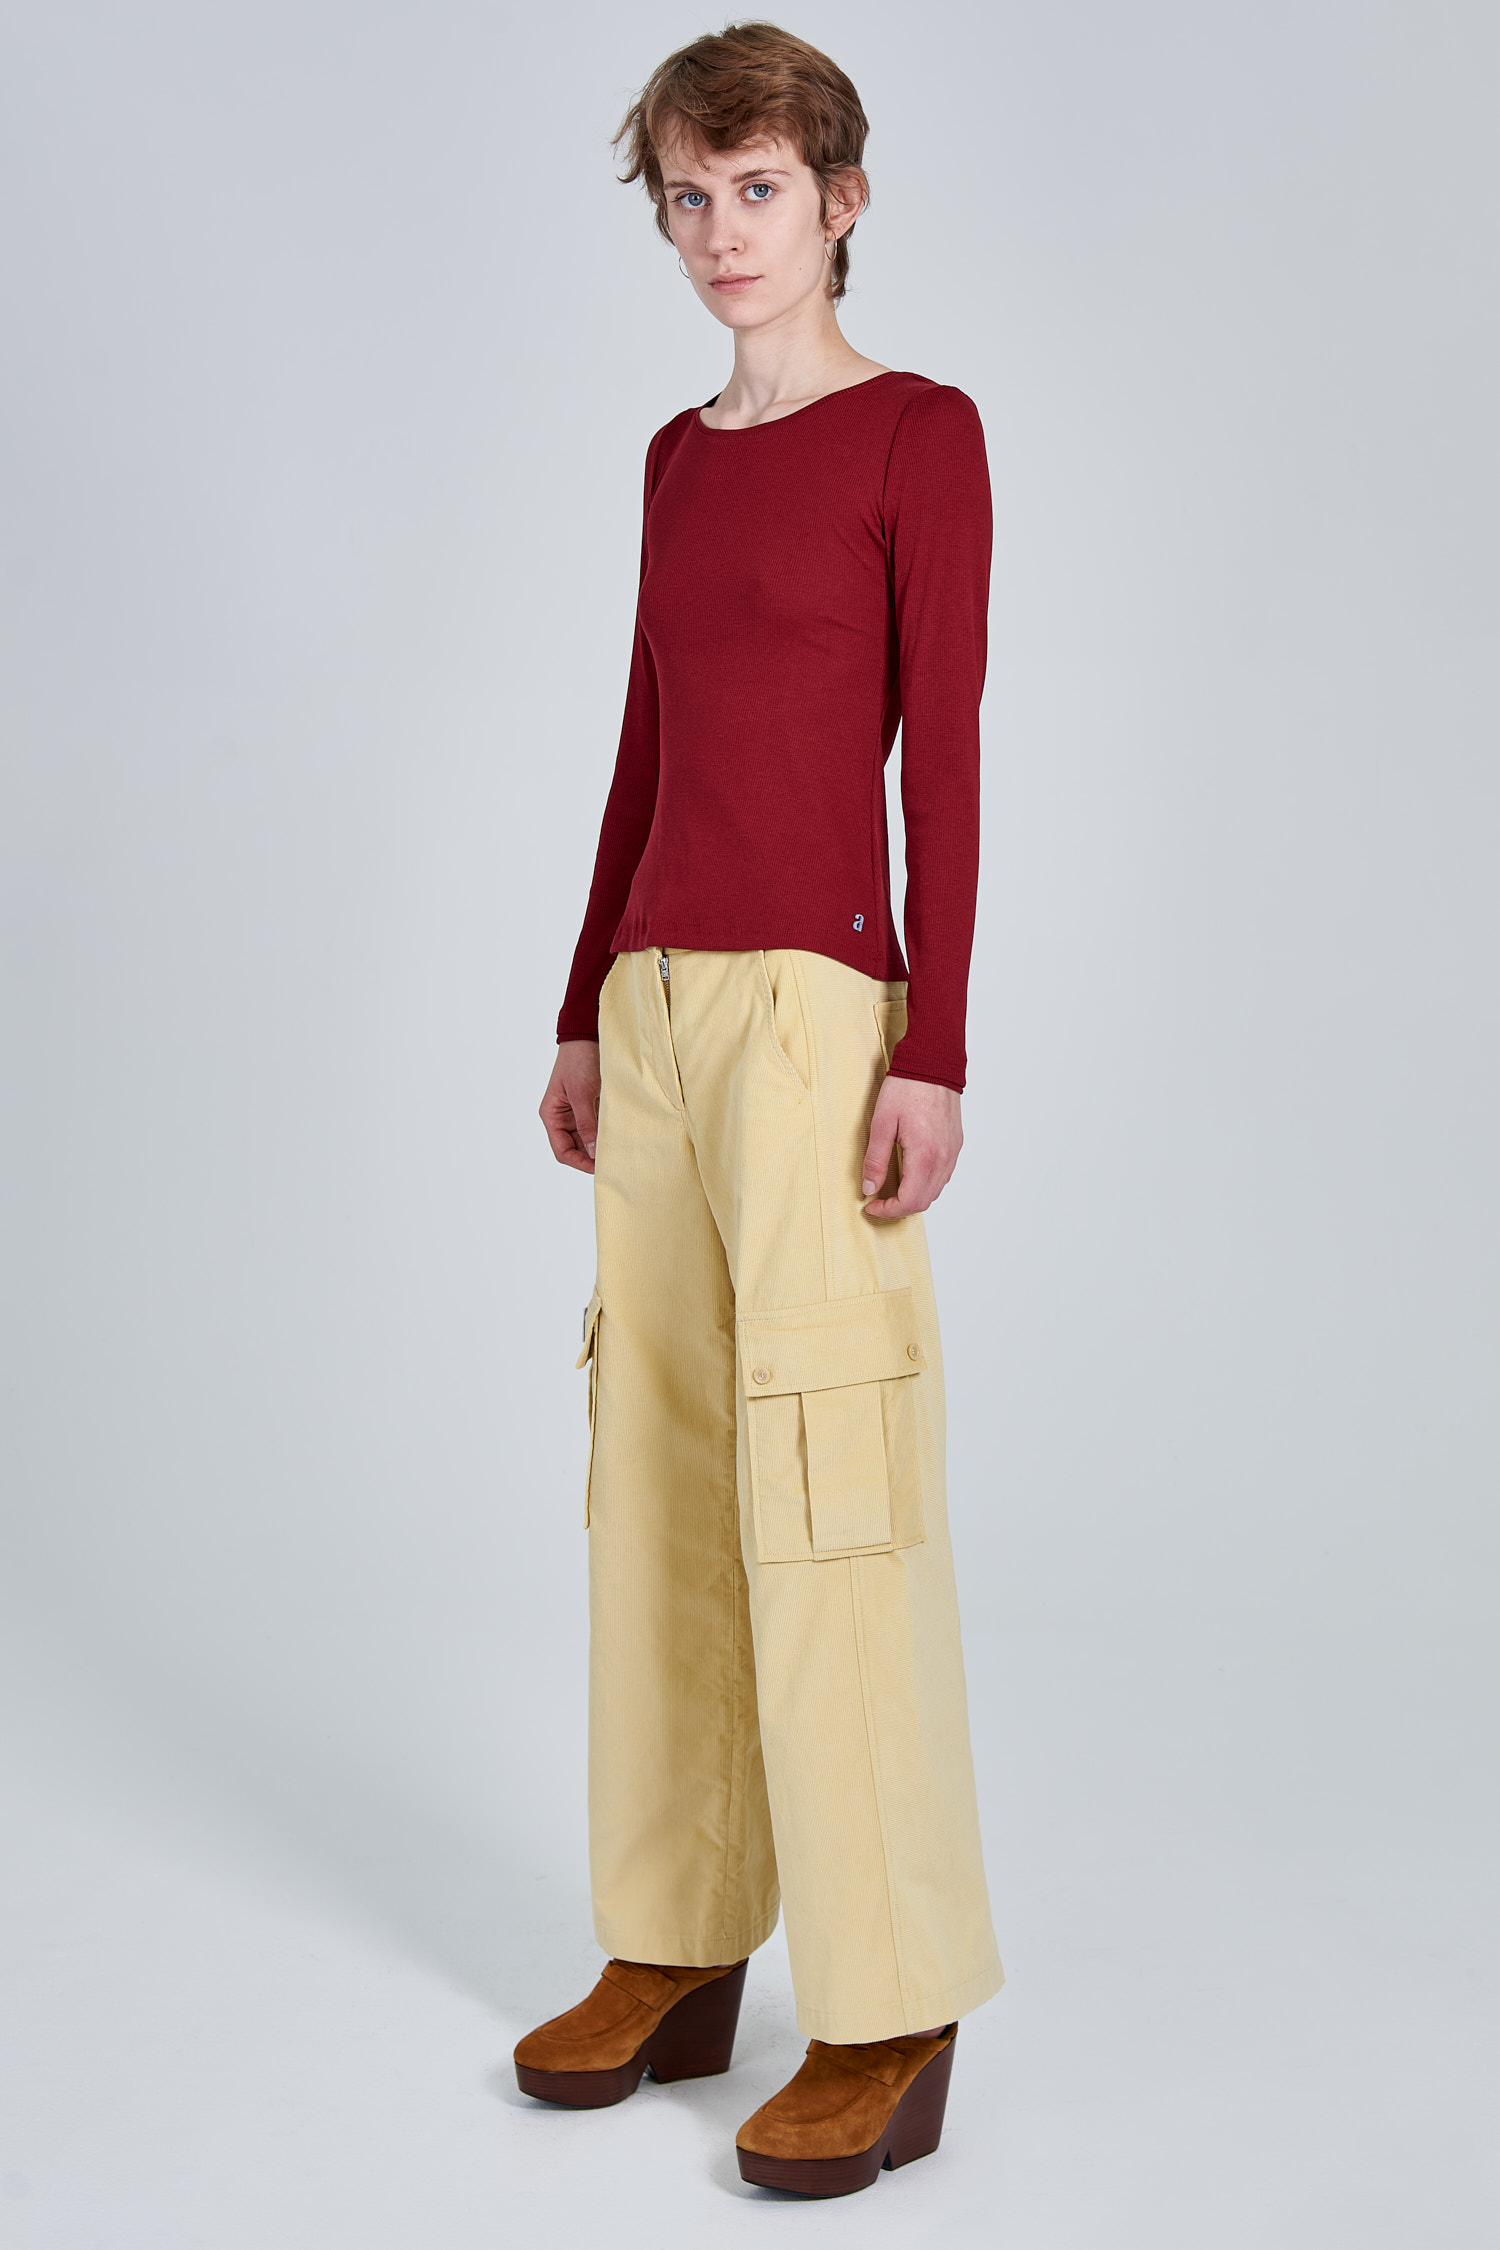 Acephala Fw 2020 21 Red Longsleeve Corduroy Trousers Female Side